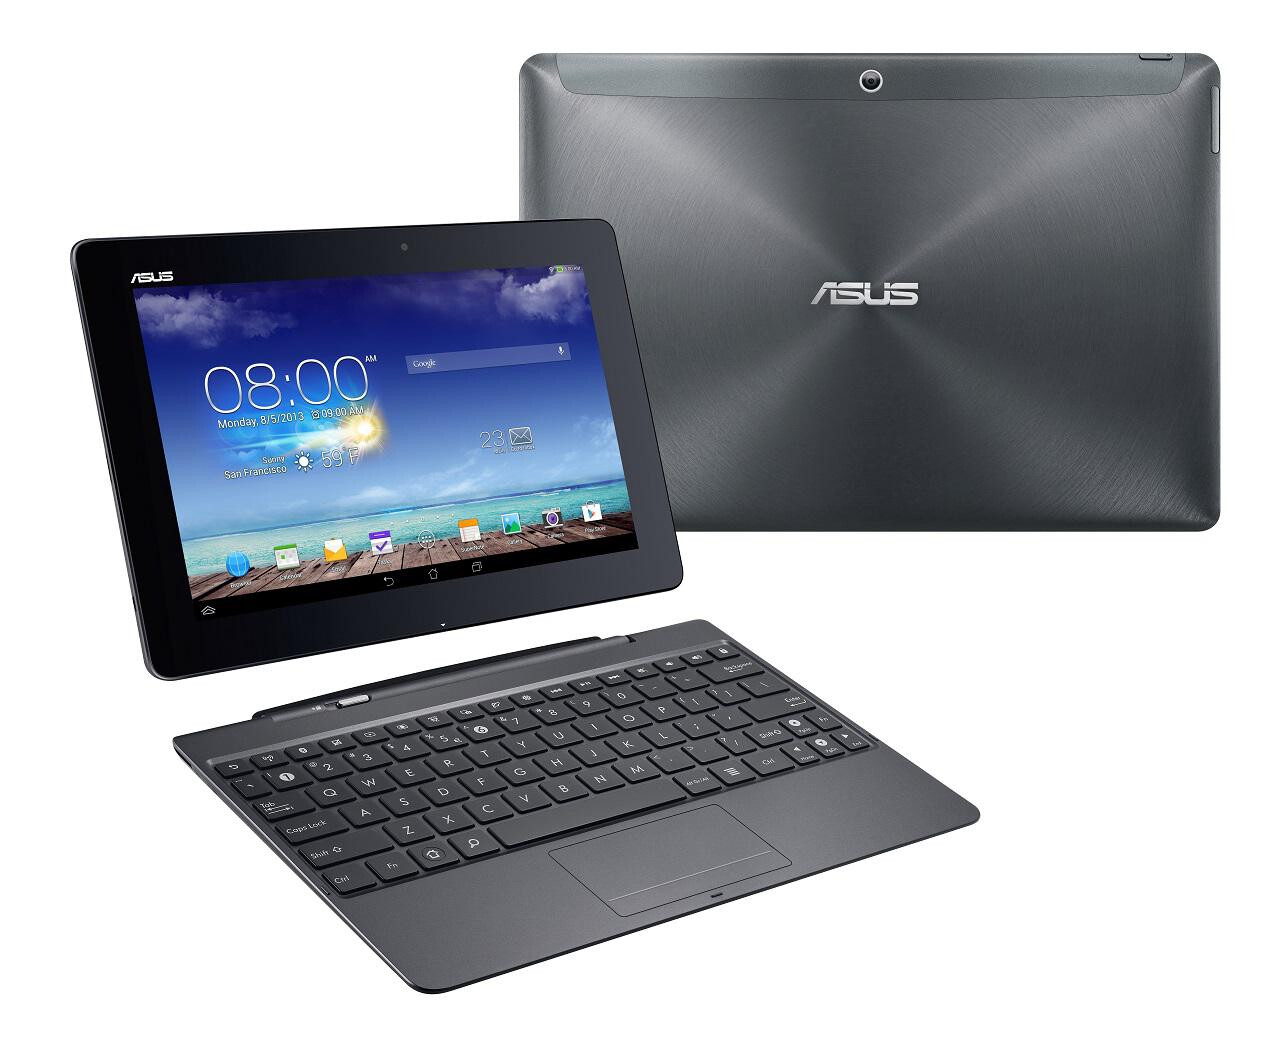 The Asus Transformer Pad Tablet